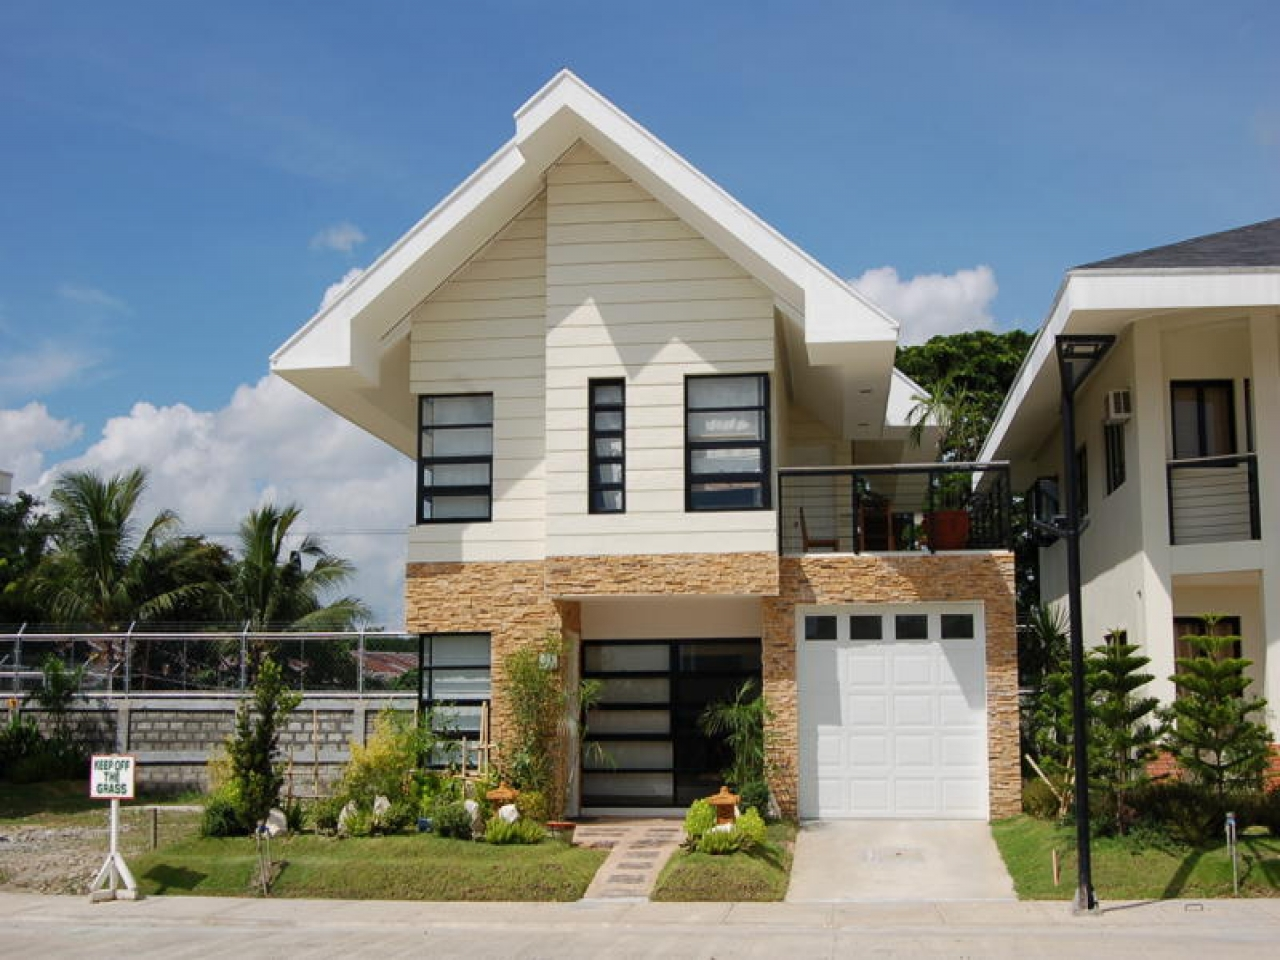 Home small modern house designs pictures inexpensive for Modern compact home designs